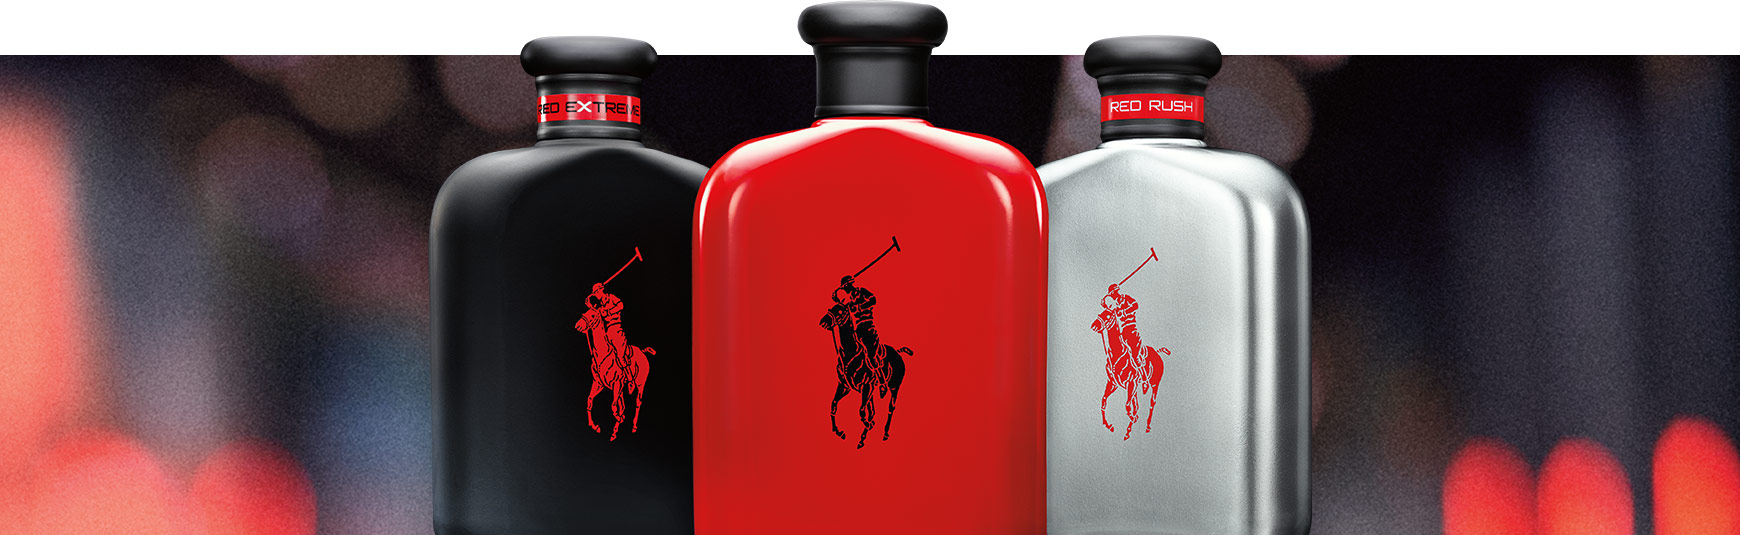 838cc70b6d Bottles of Polo Red Extreme, Polo Red & Polo Red Rush fragrances